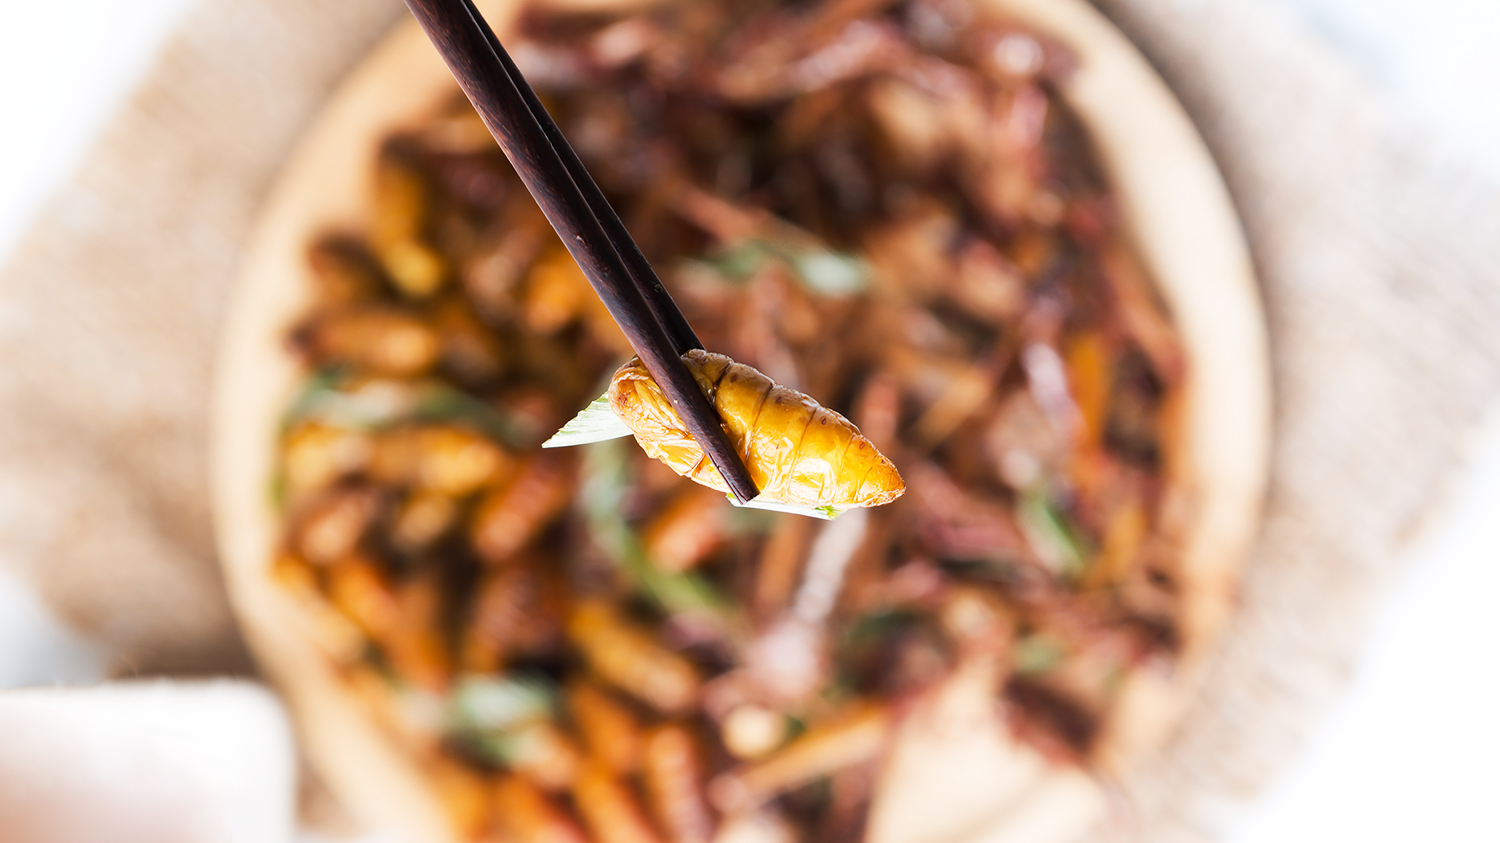 Here's the Mixtape to Listen to While You Eat Insects